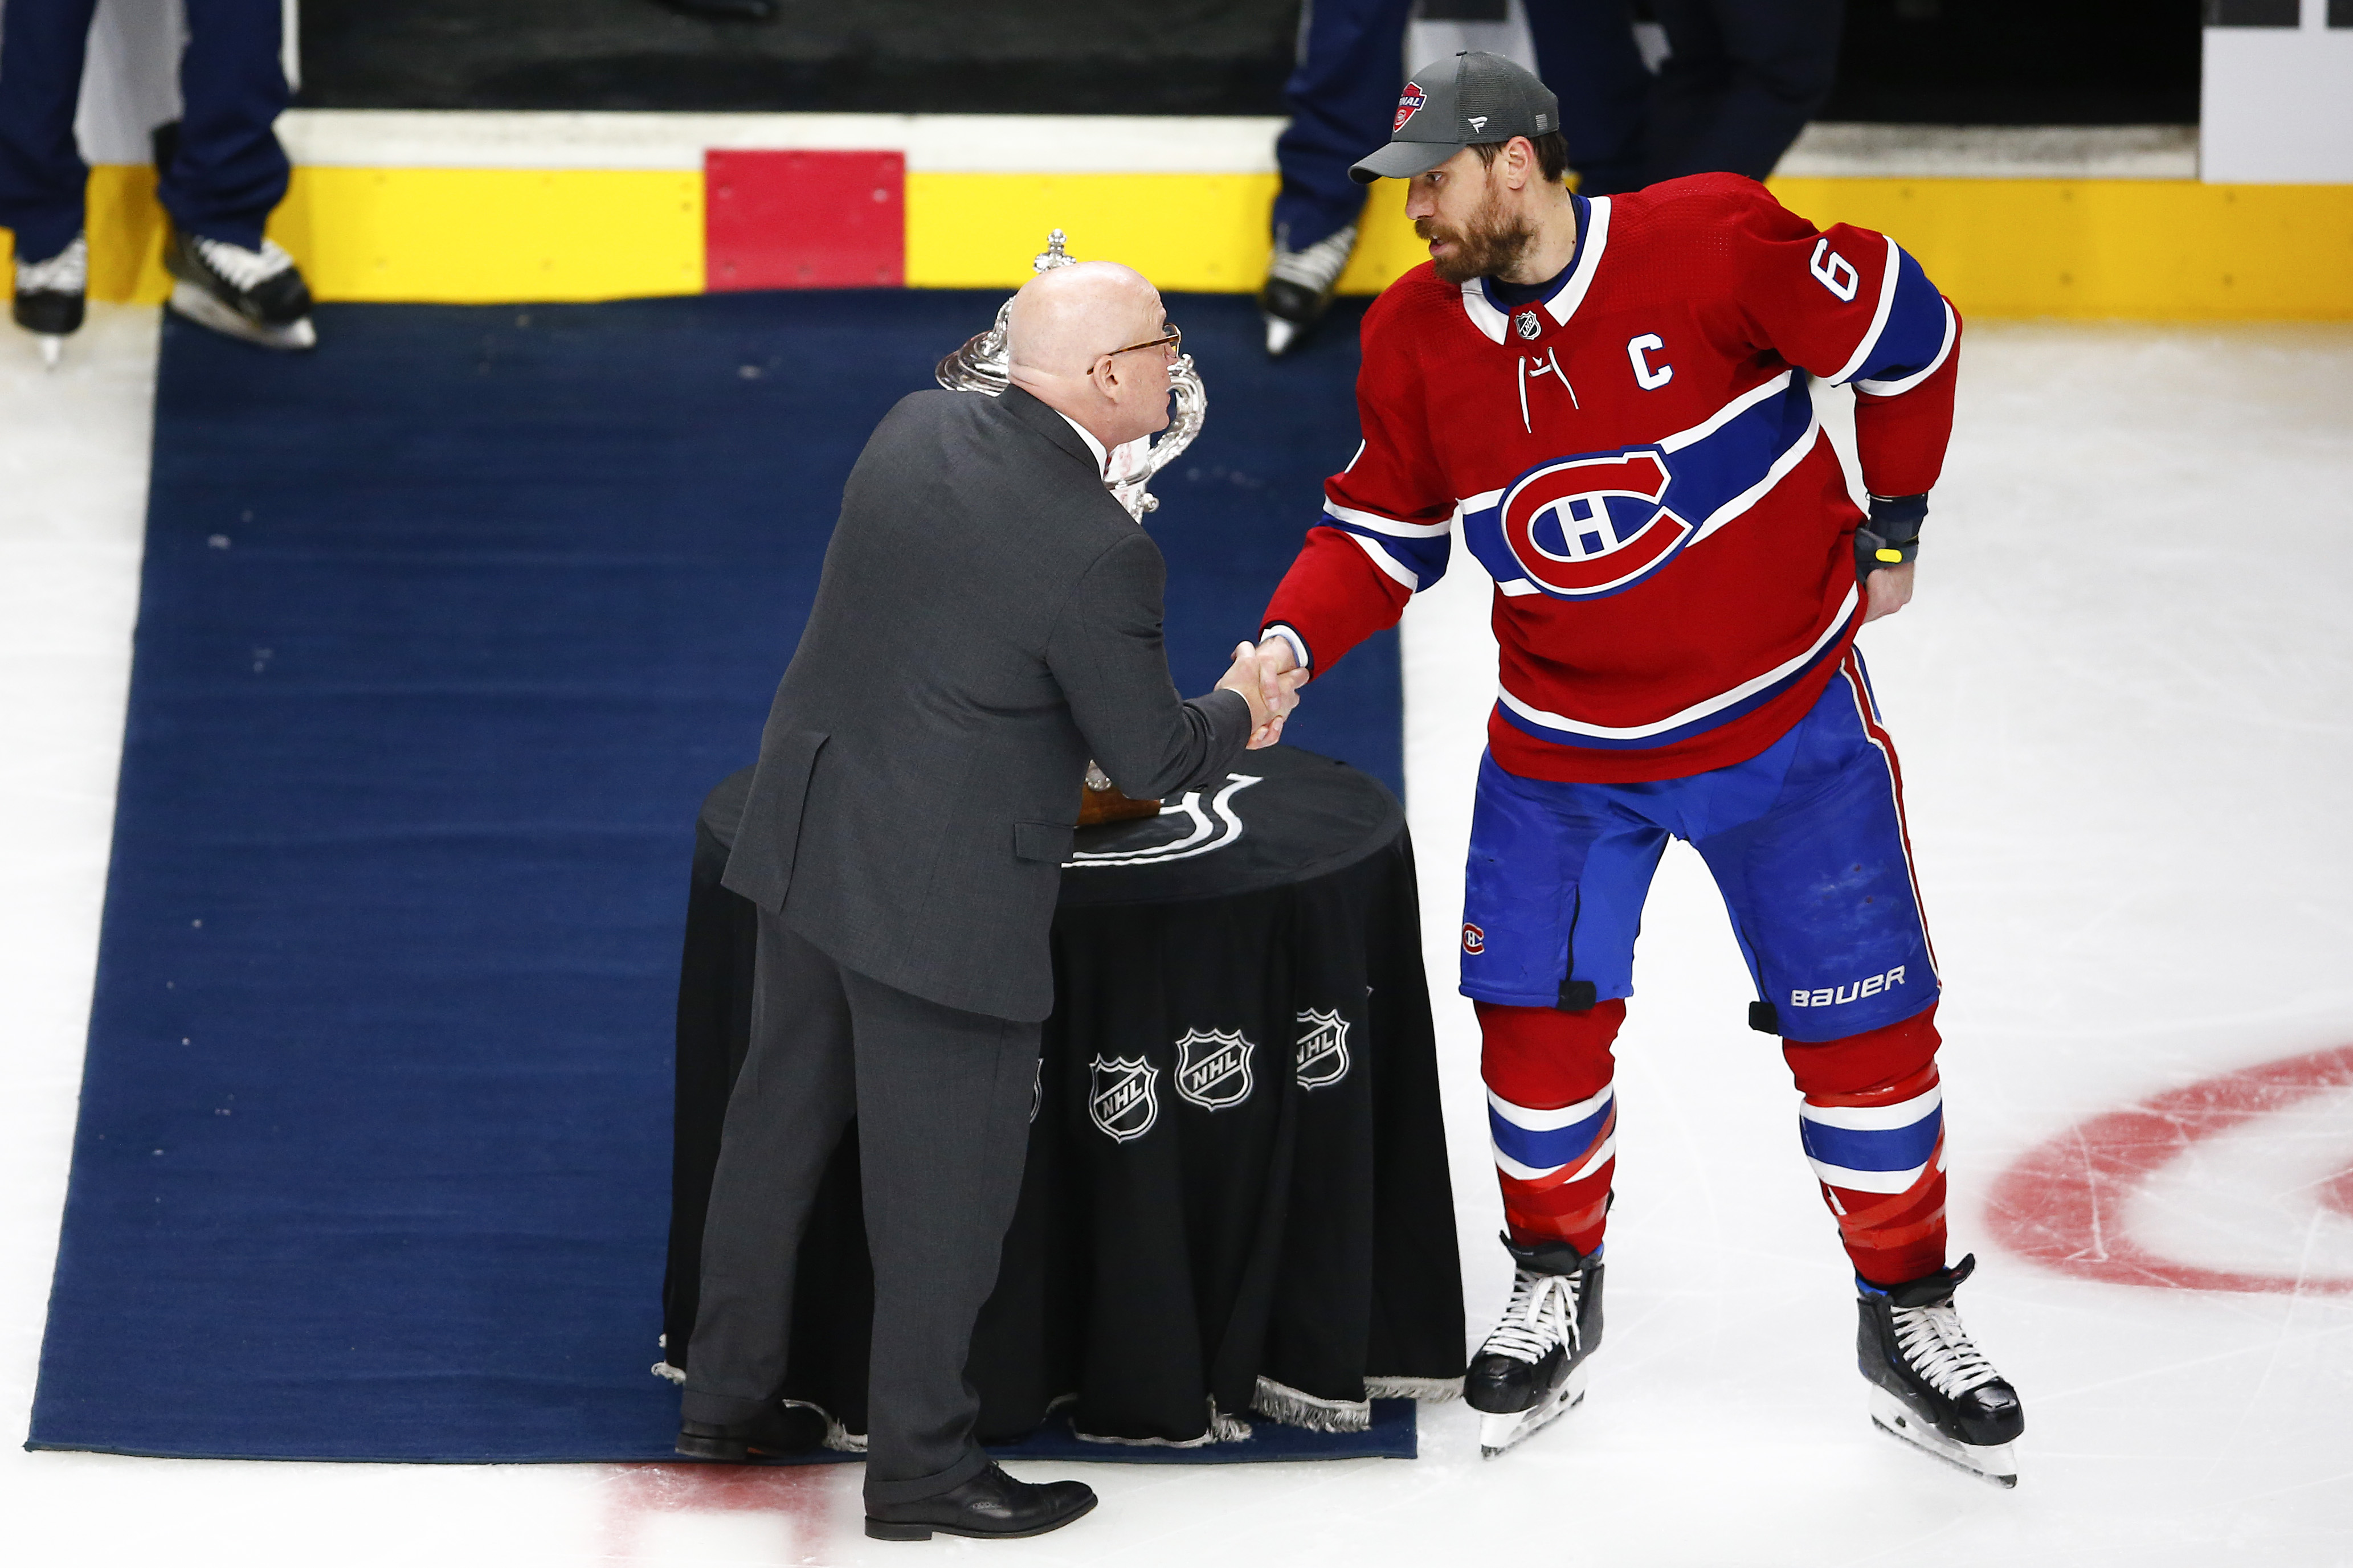 Few expected to see the Canadiens in the Stanley Cup Final, but the Habs are four wins away from lifting their first Cup since 1993.